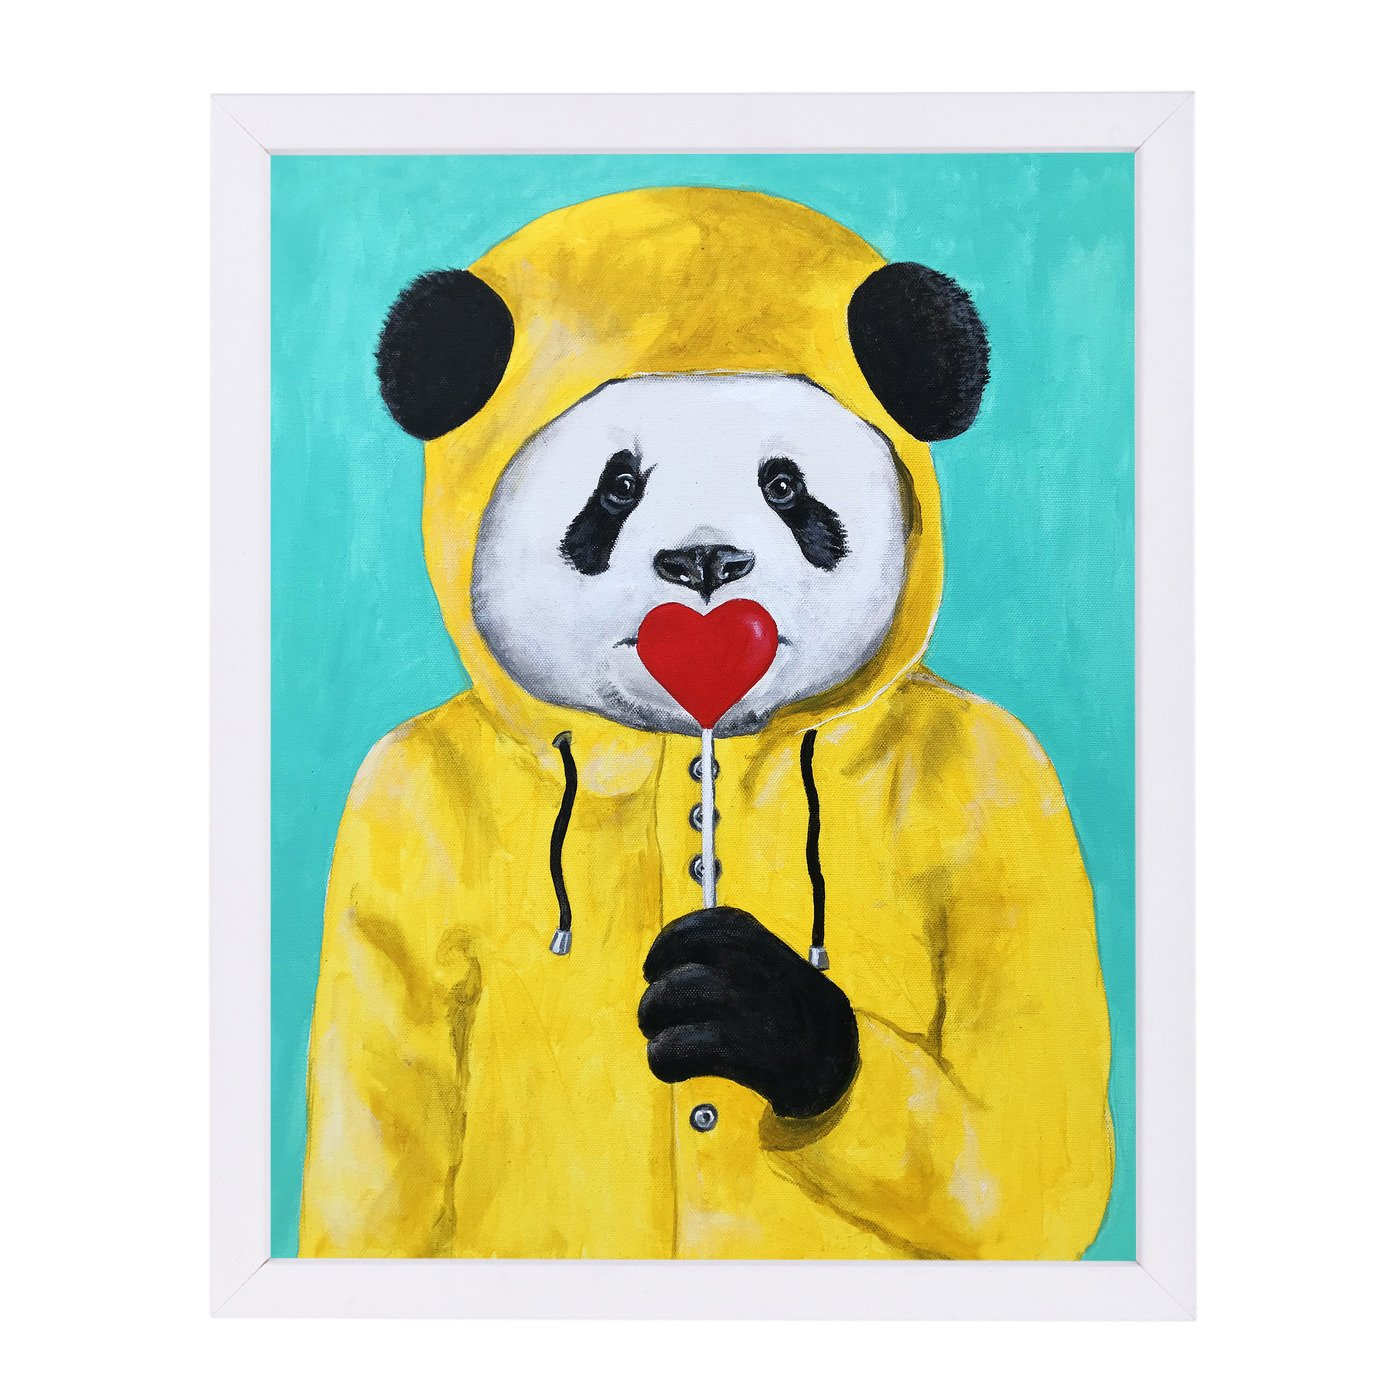 Panda With Lollipop By Coco De Paris - Framed Print - Americanflat